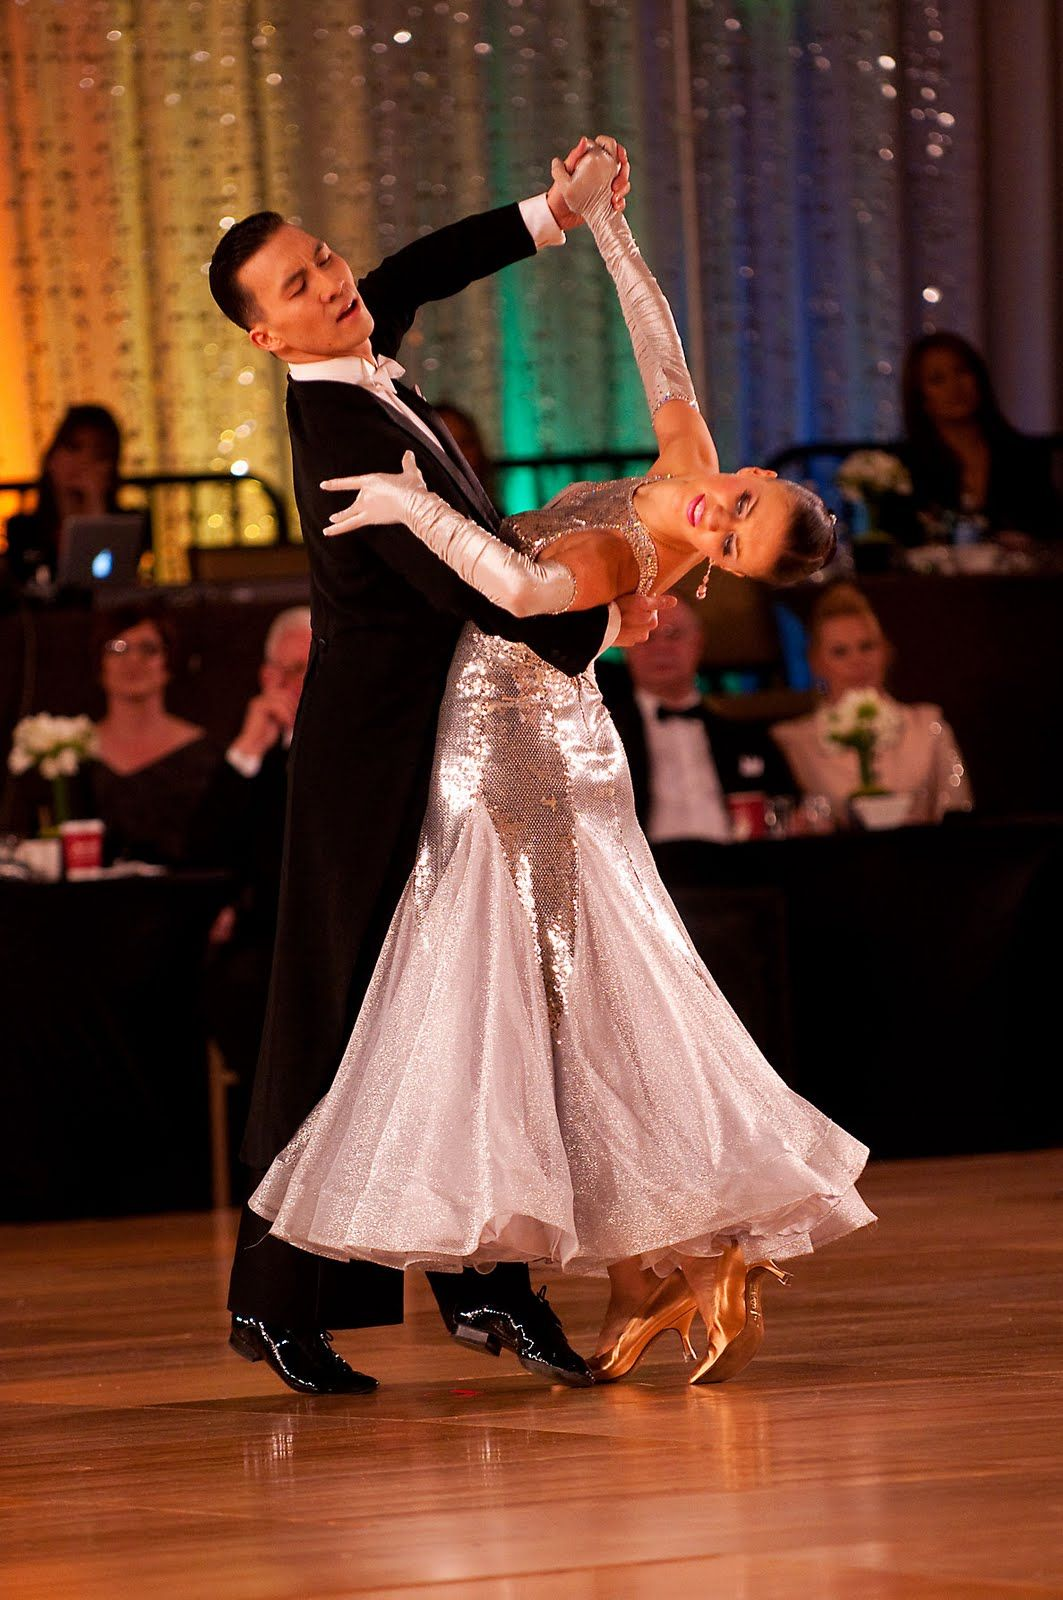 Victor And Anastasia Positioned With Poise Dance Dresses Ballroom Dress Ballroom Dance